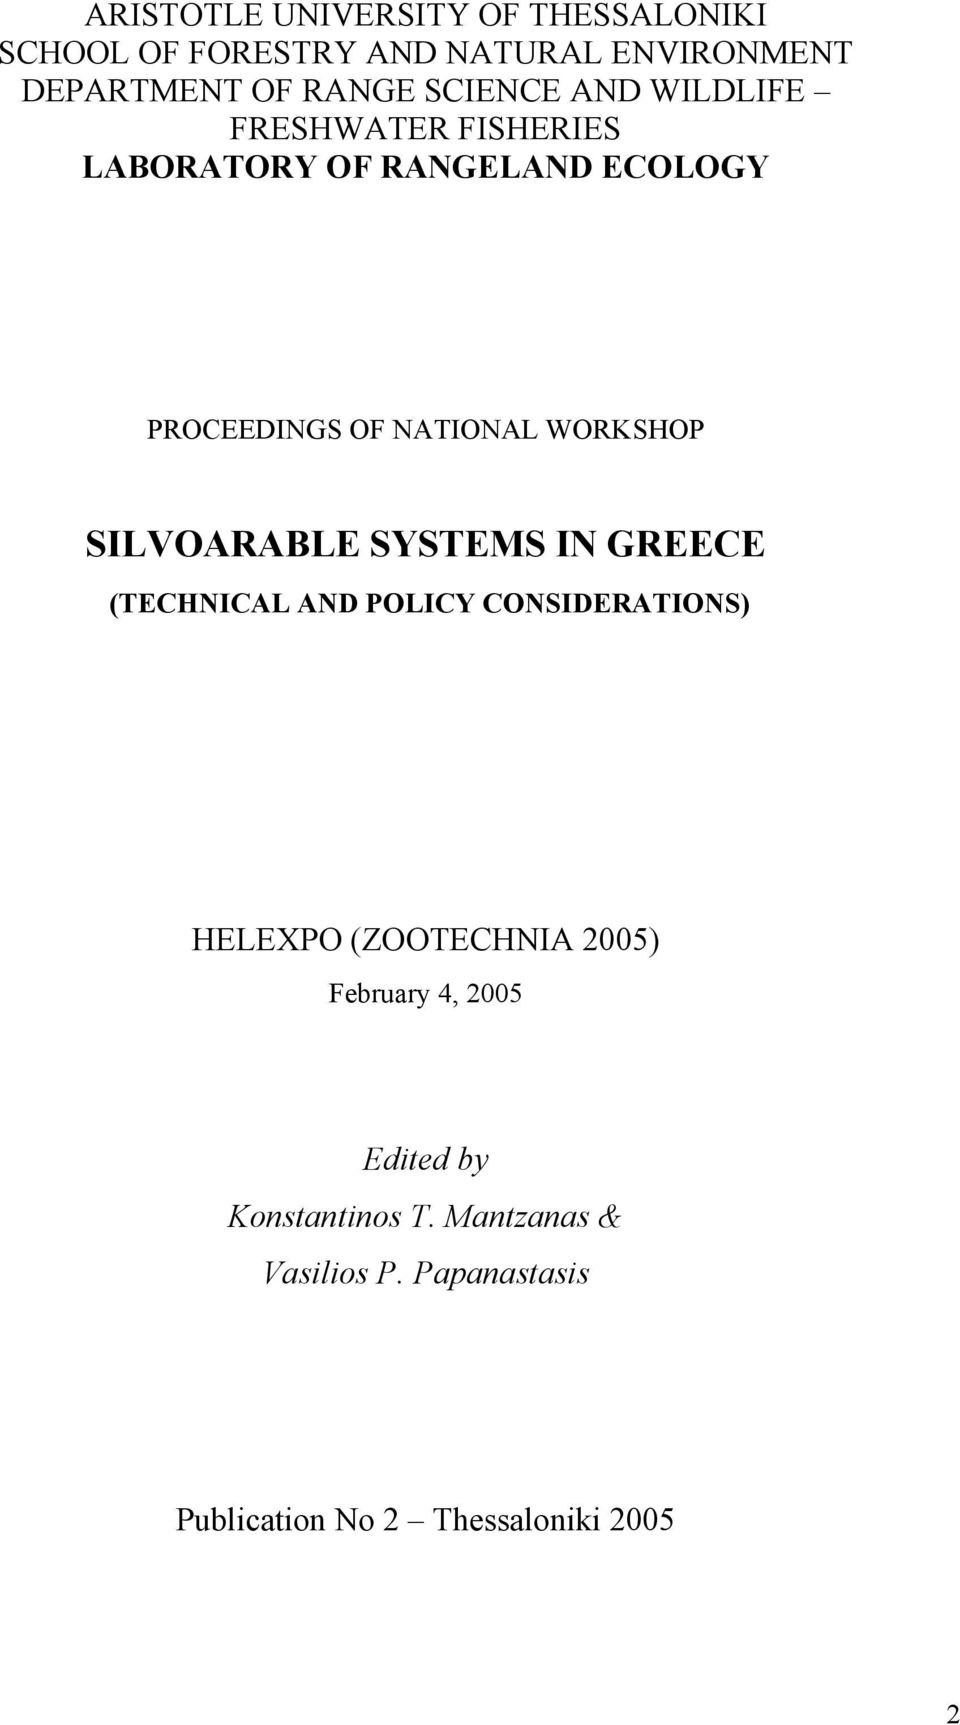 WORKSHOP SILVOARABLE SYSTEMS IN GREECE (TECHNICAL AND POLICY CONSIDERATIONS) HELEXPO (ZOOTECHNIA 2005)